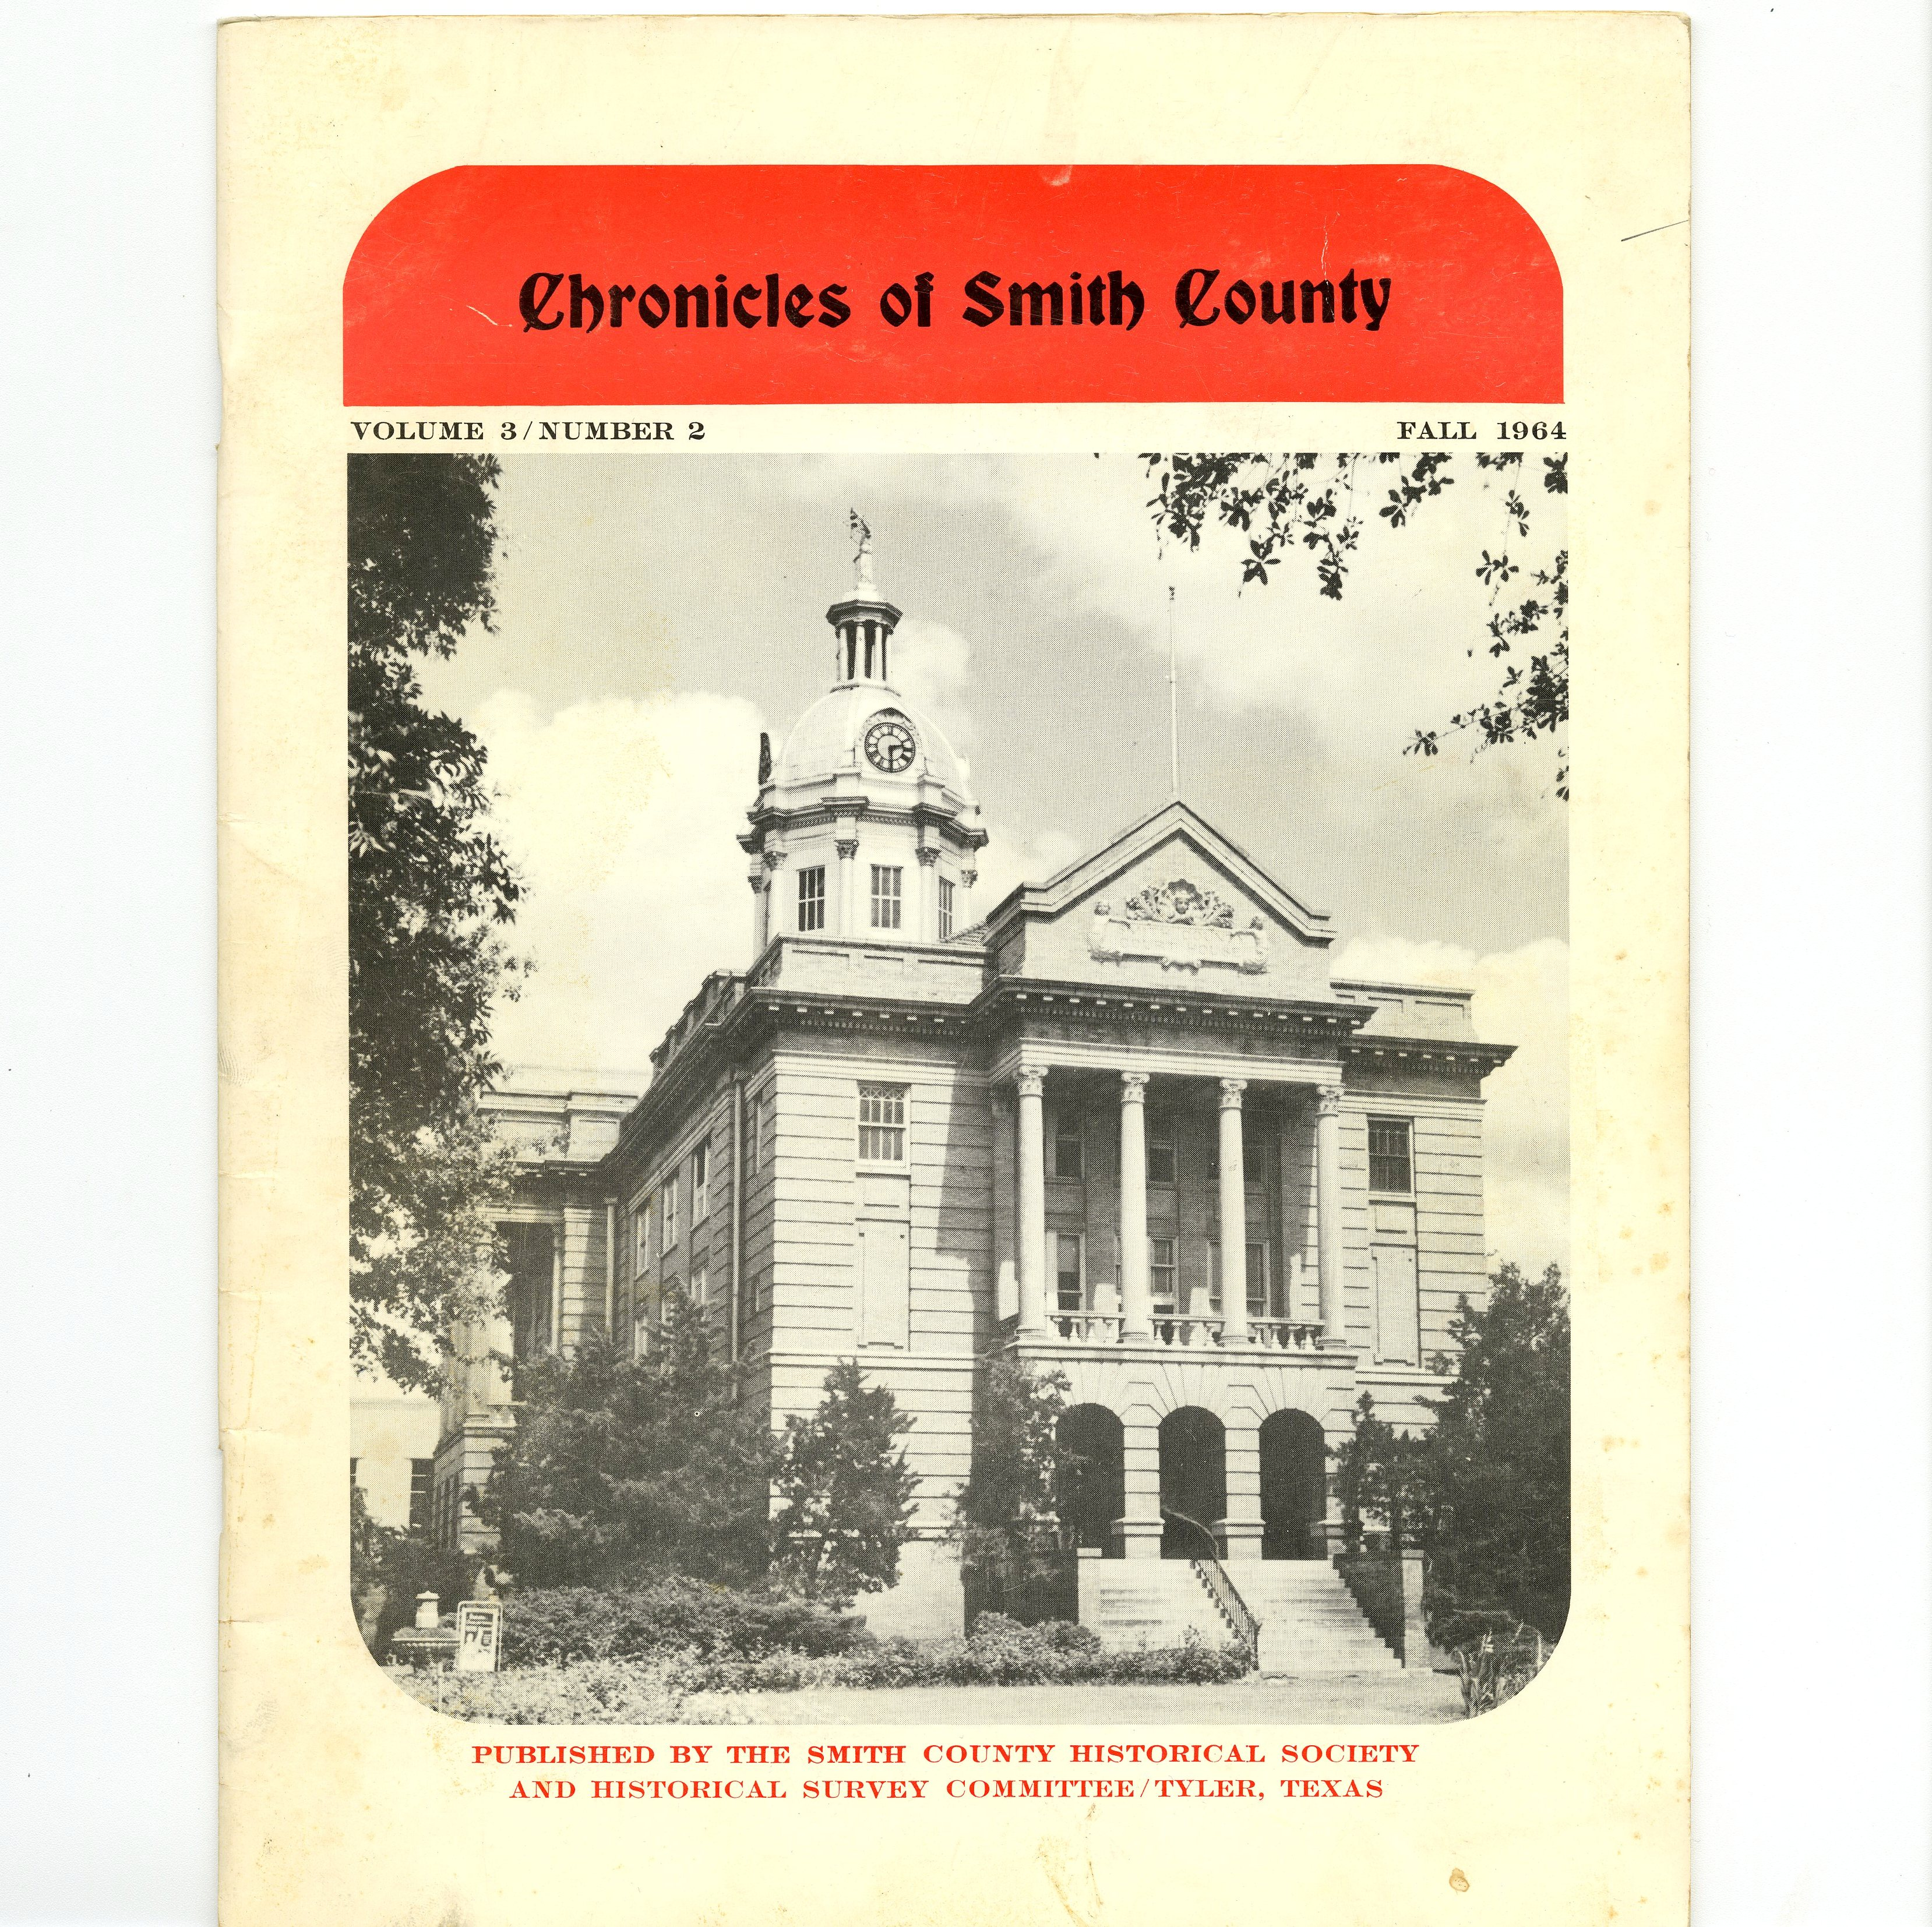 Chronicles of Smith County, Texas, Volume 3 Issue 2, Fall 1964.